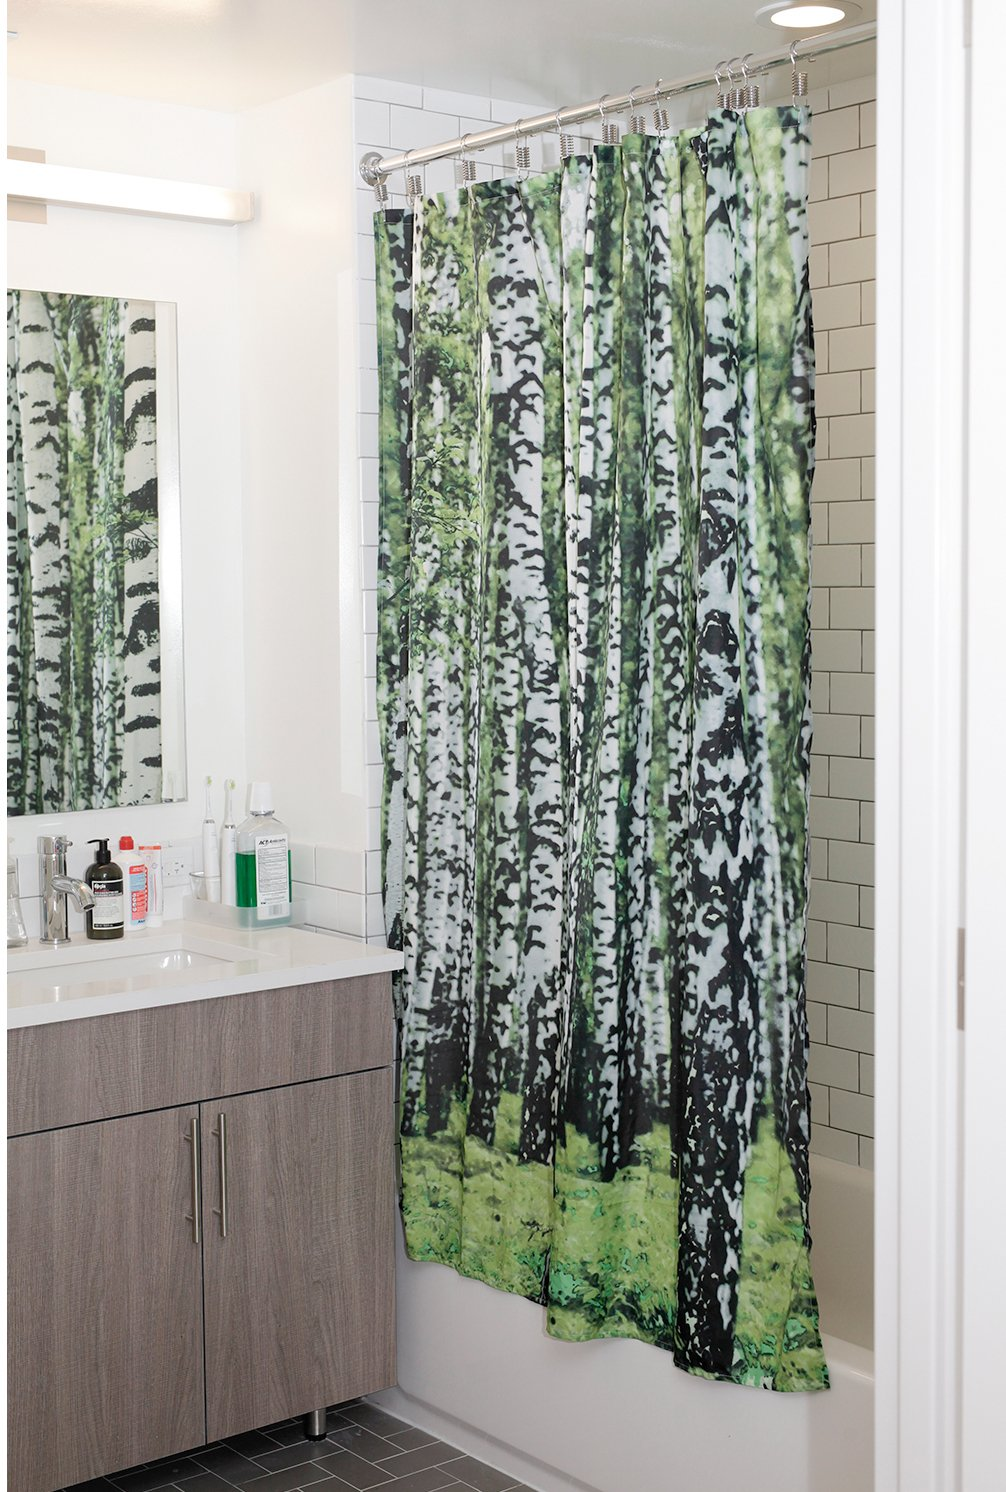 Psycho shower curtain with sound - Amazon Com Kikkerland Psycho Shower Curtain 72 Inch By 72 Inch Home Kitchen